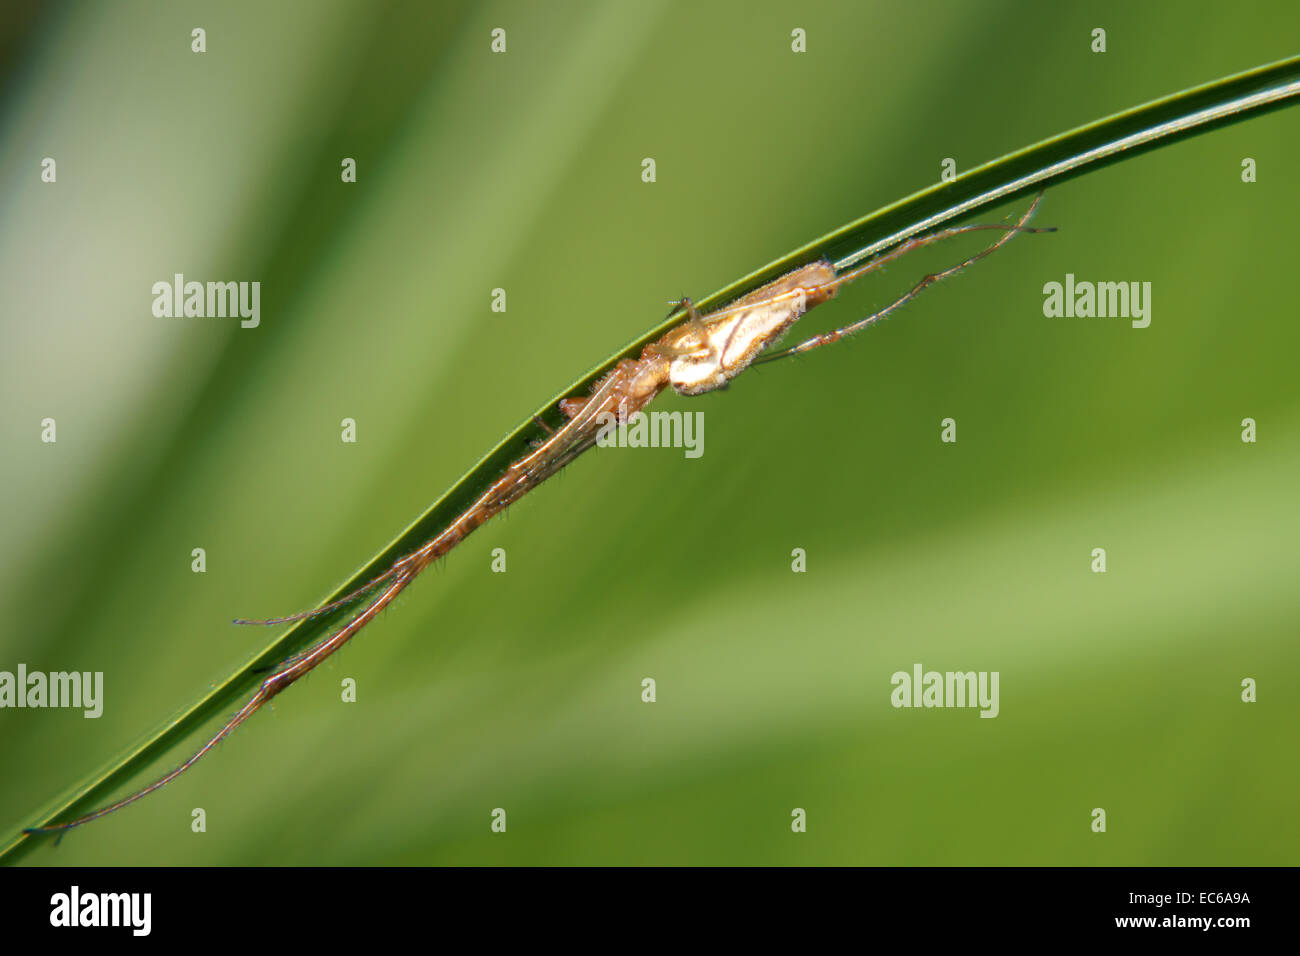 Elongated spider - Stock Image